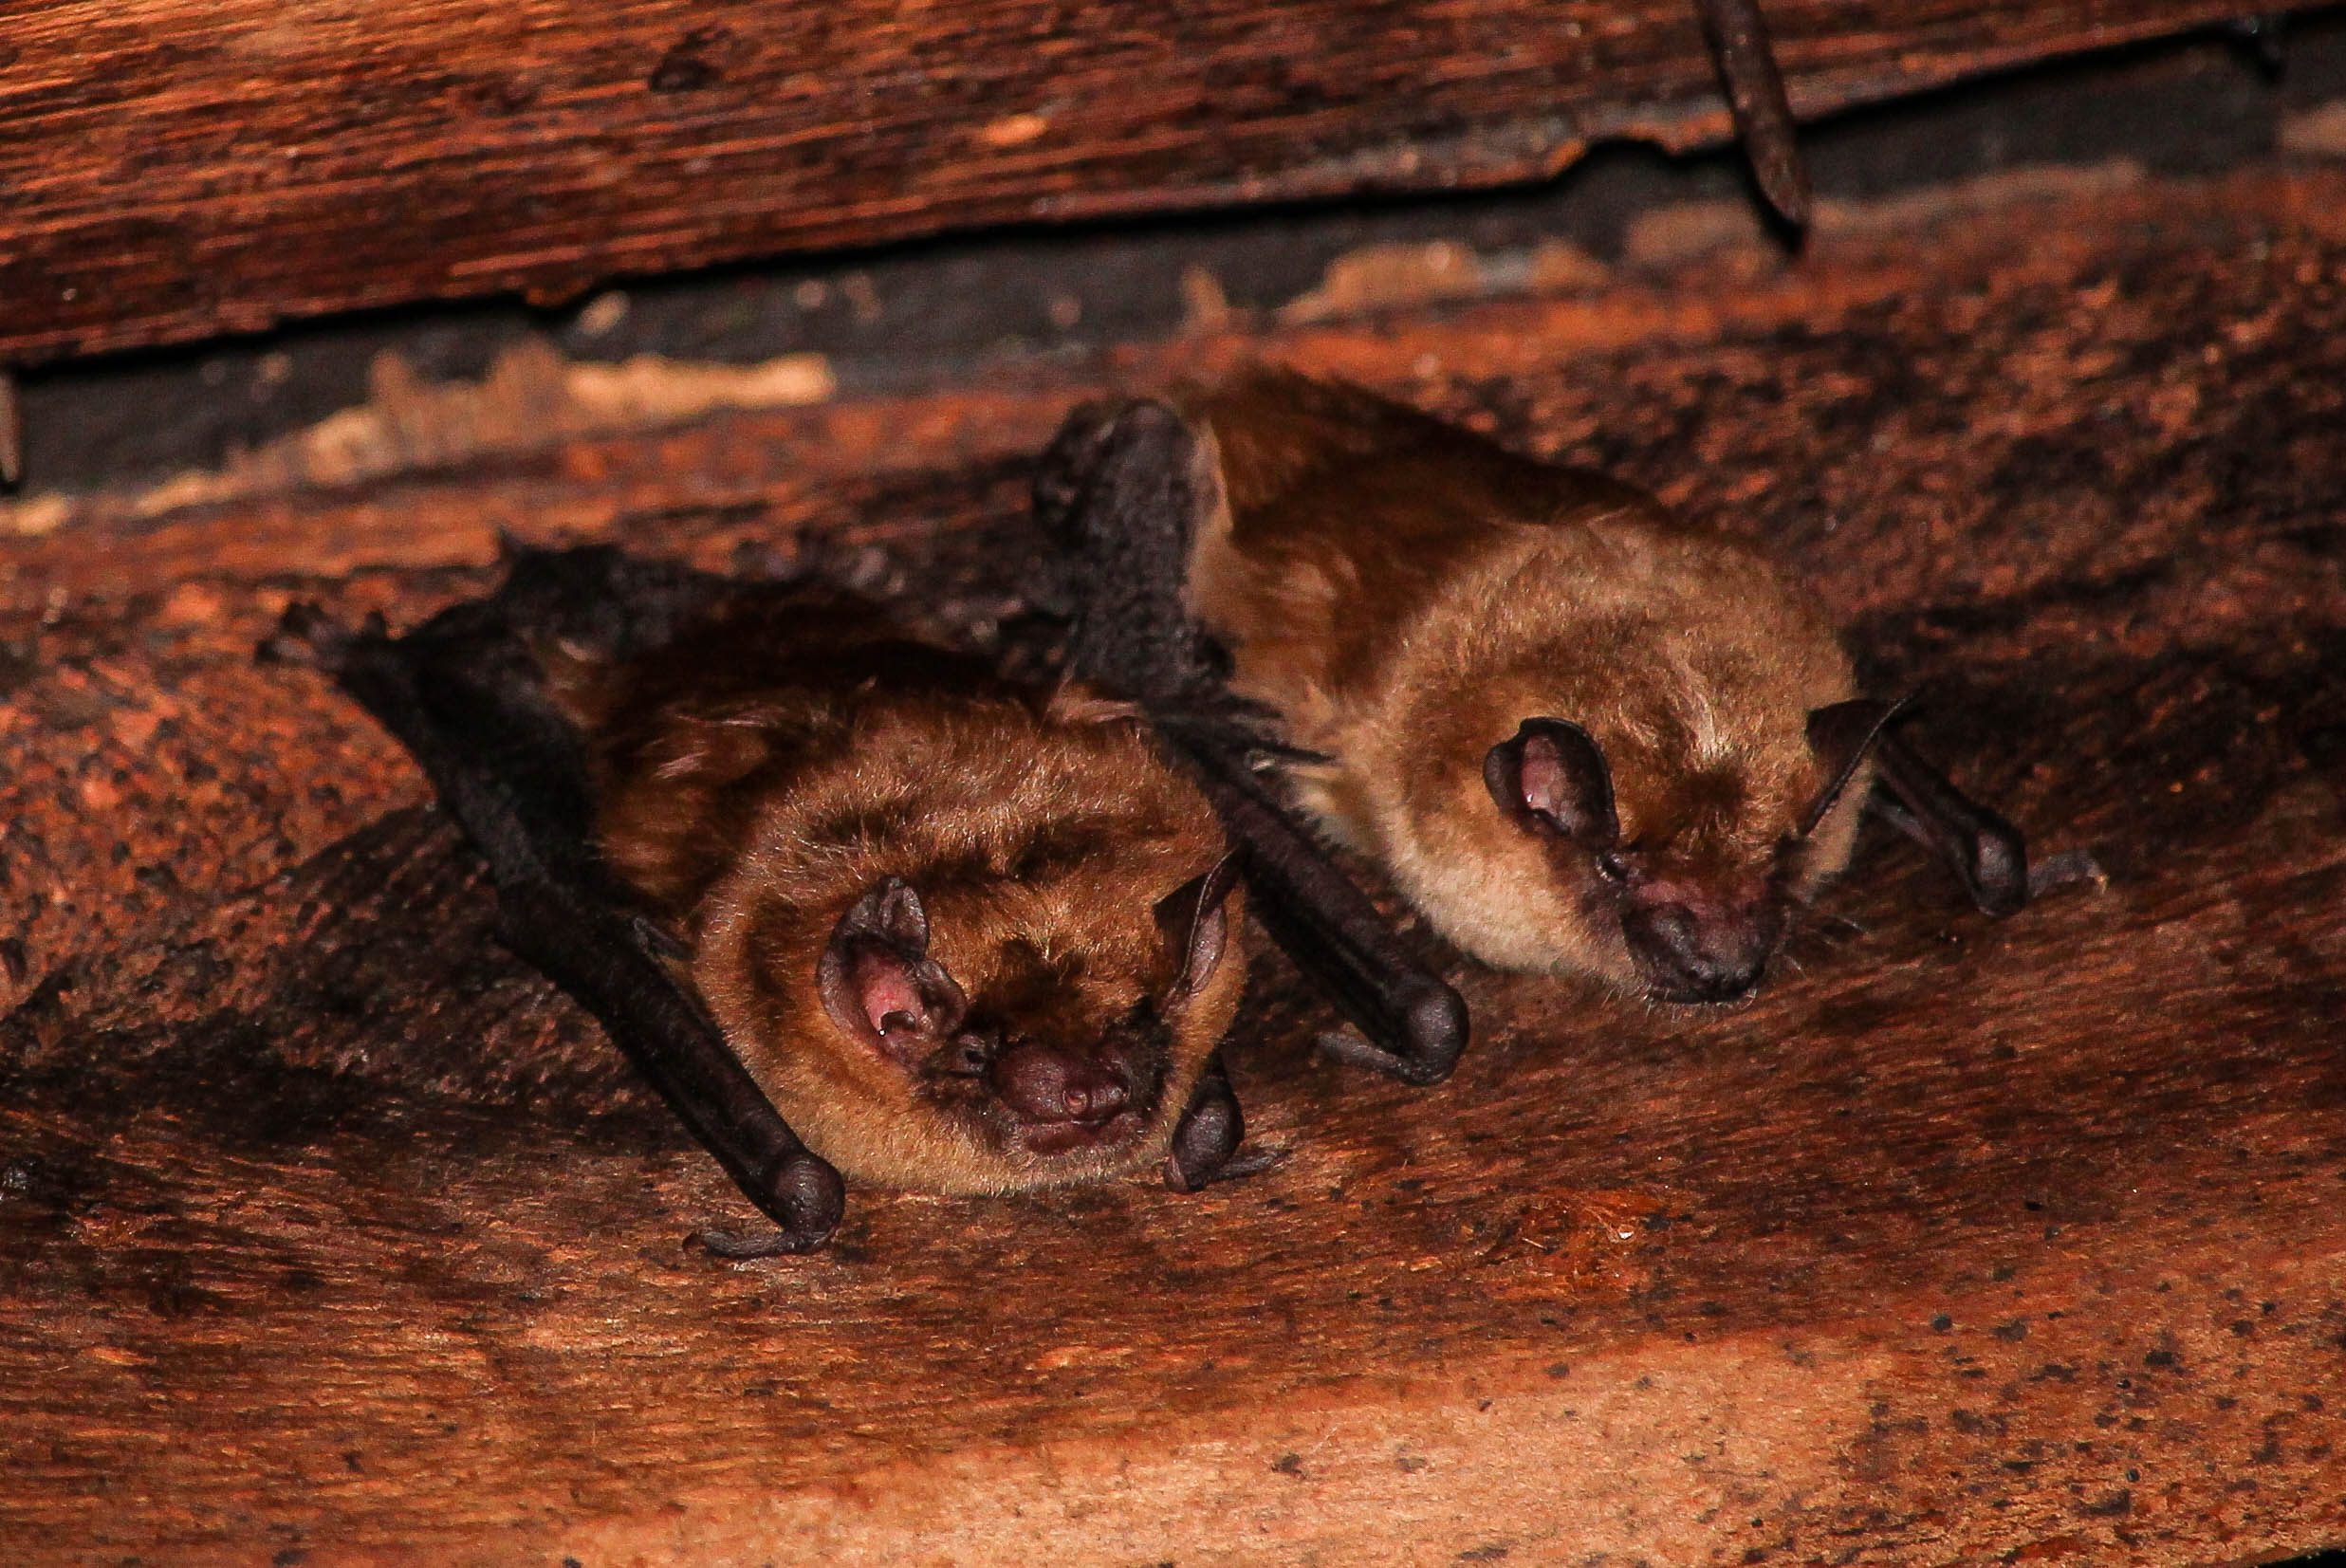 Big brown bats ( Eptesicus fuscus ) |  Connor Long/Wikimedia Commons  [ CC BY-SA 4.0 ]